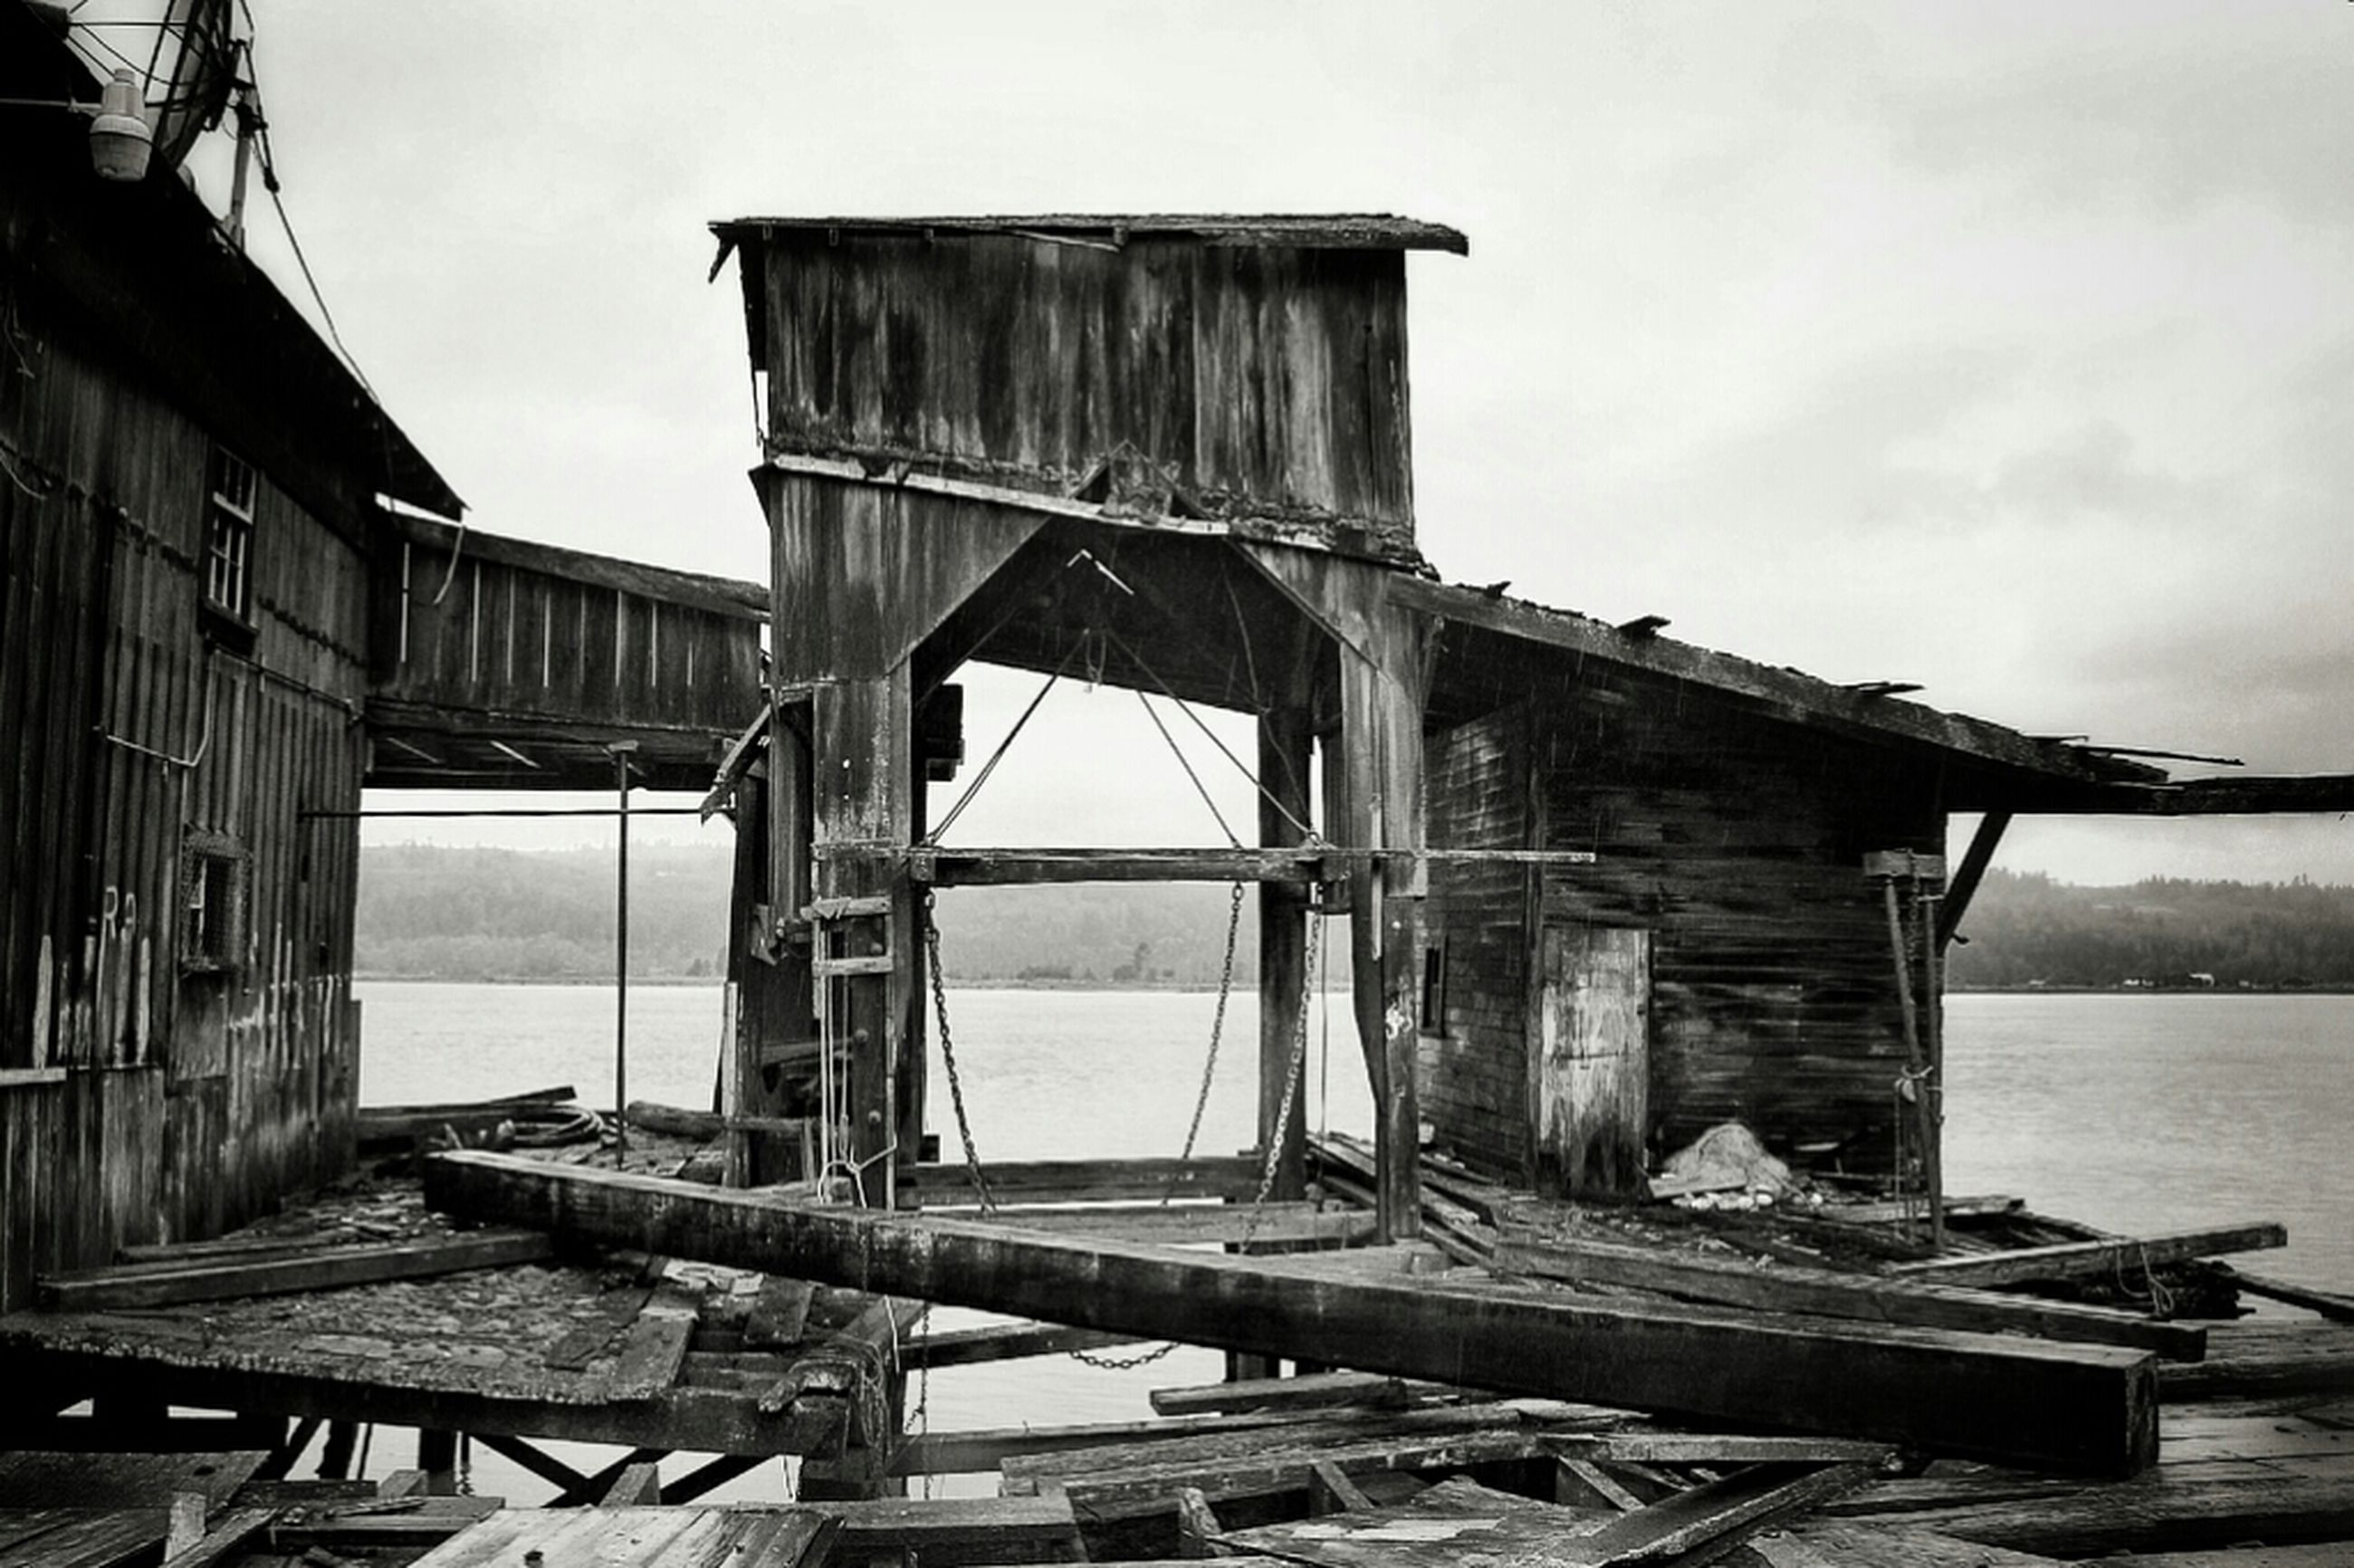 built structure, wood - material, sky, architecture, abandoned, old, water, damaged, building exterior, obsolete, wood, wooden, weathered, day, nautical vessel, pier, run-down, sea, deterioration, no people